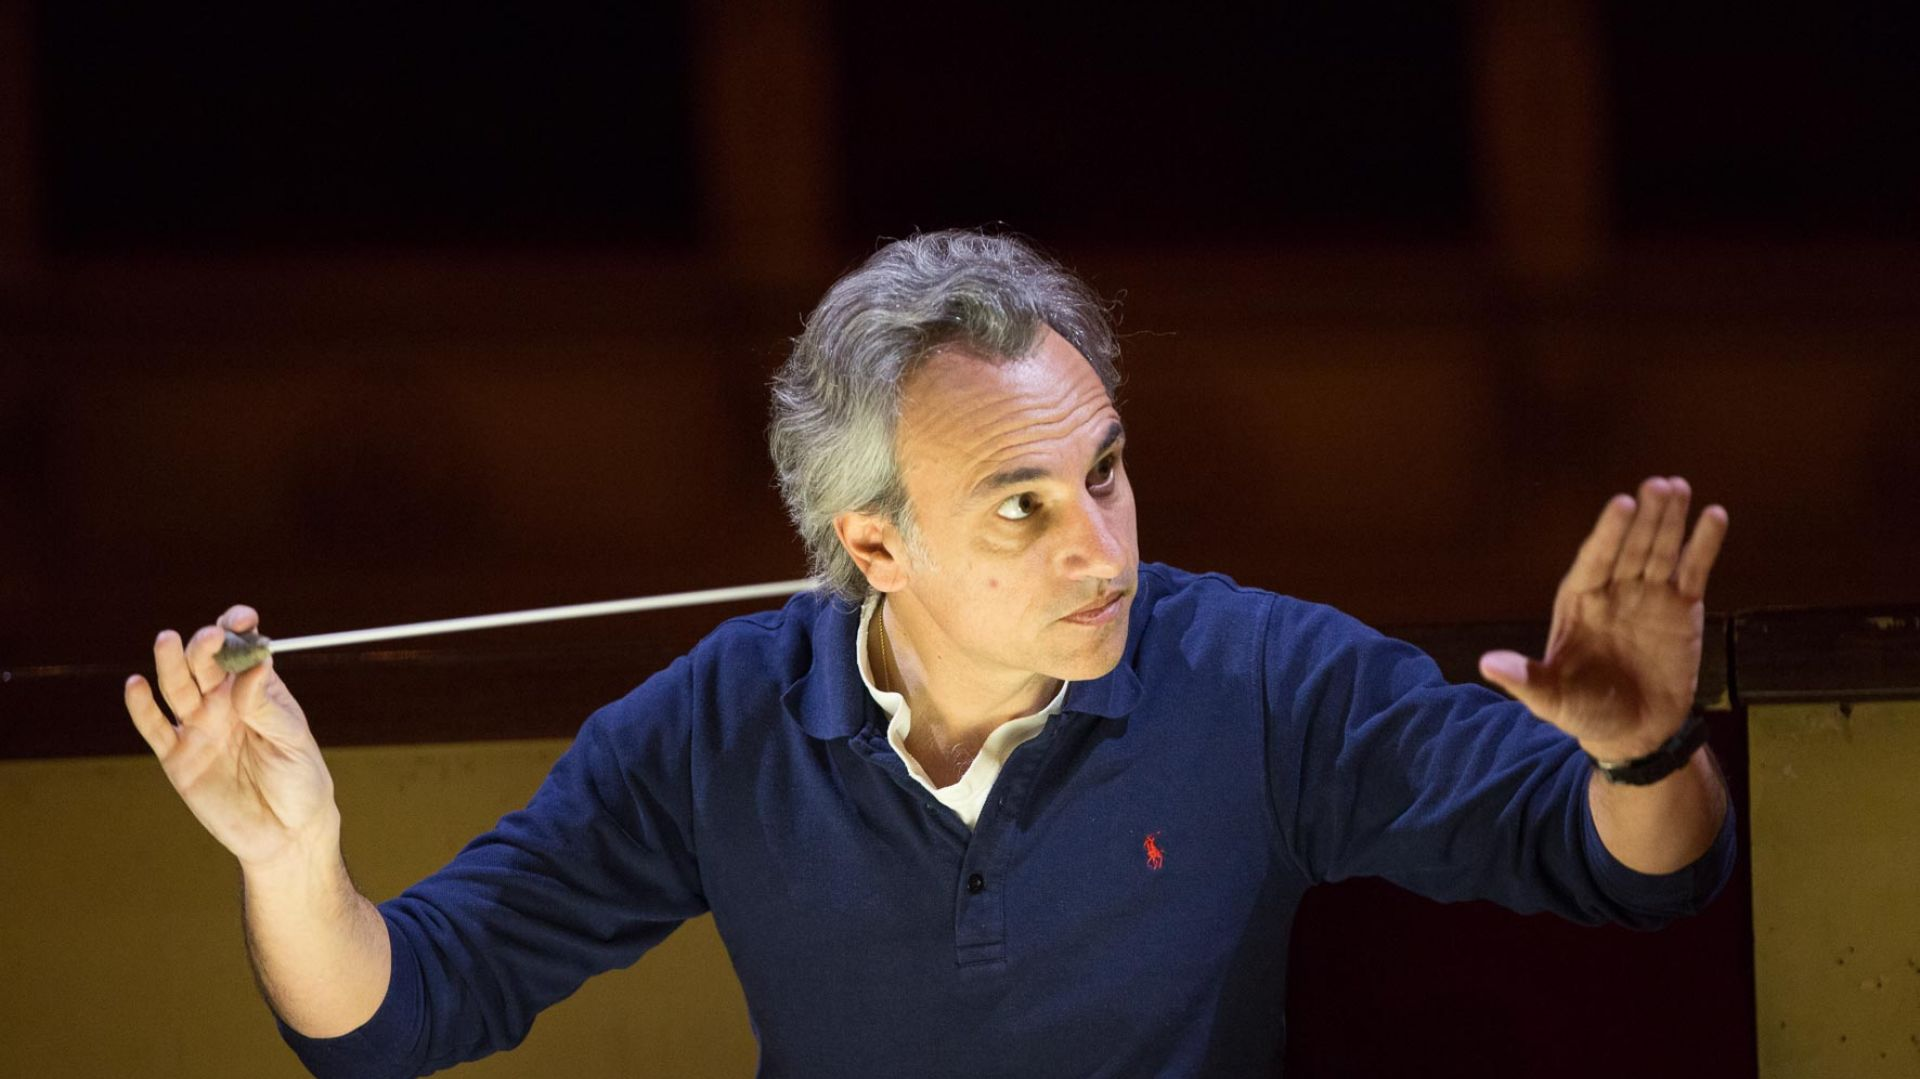 Pedro Halffter Caro is La traviata's conductor